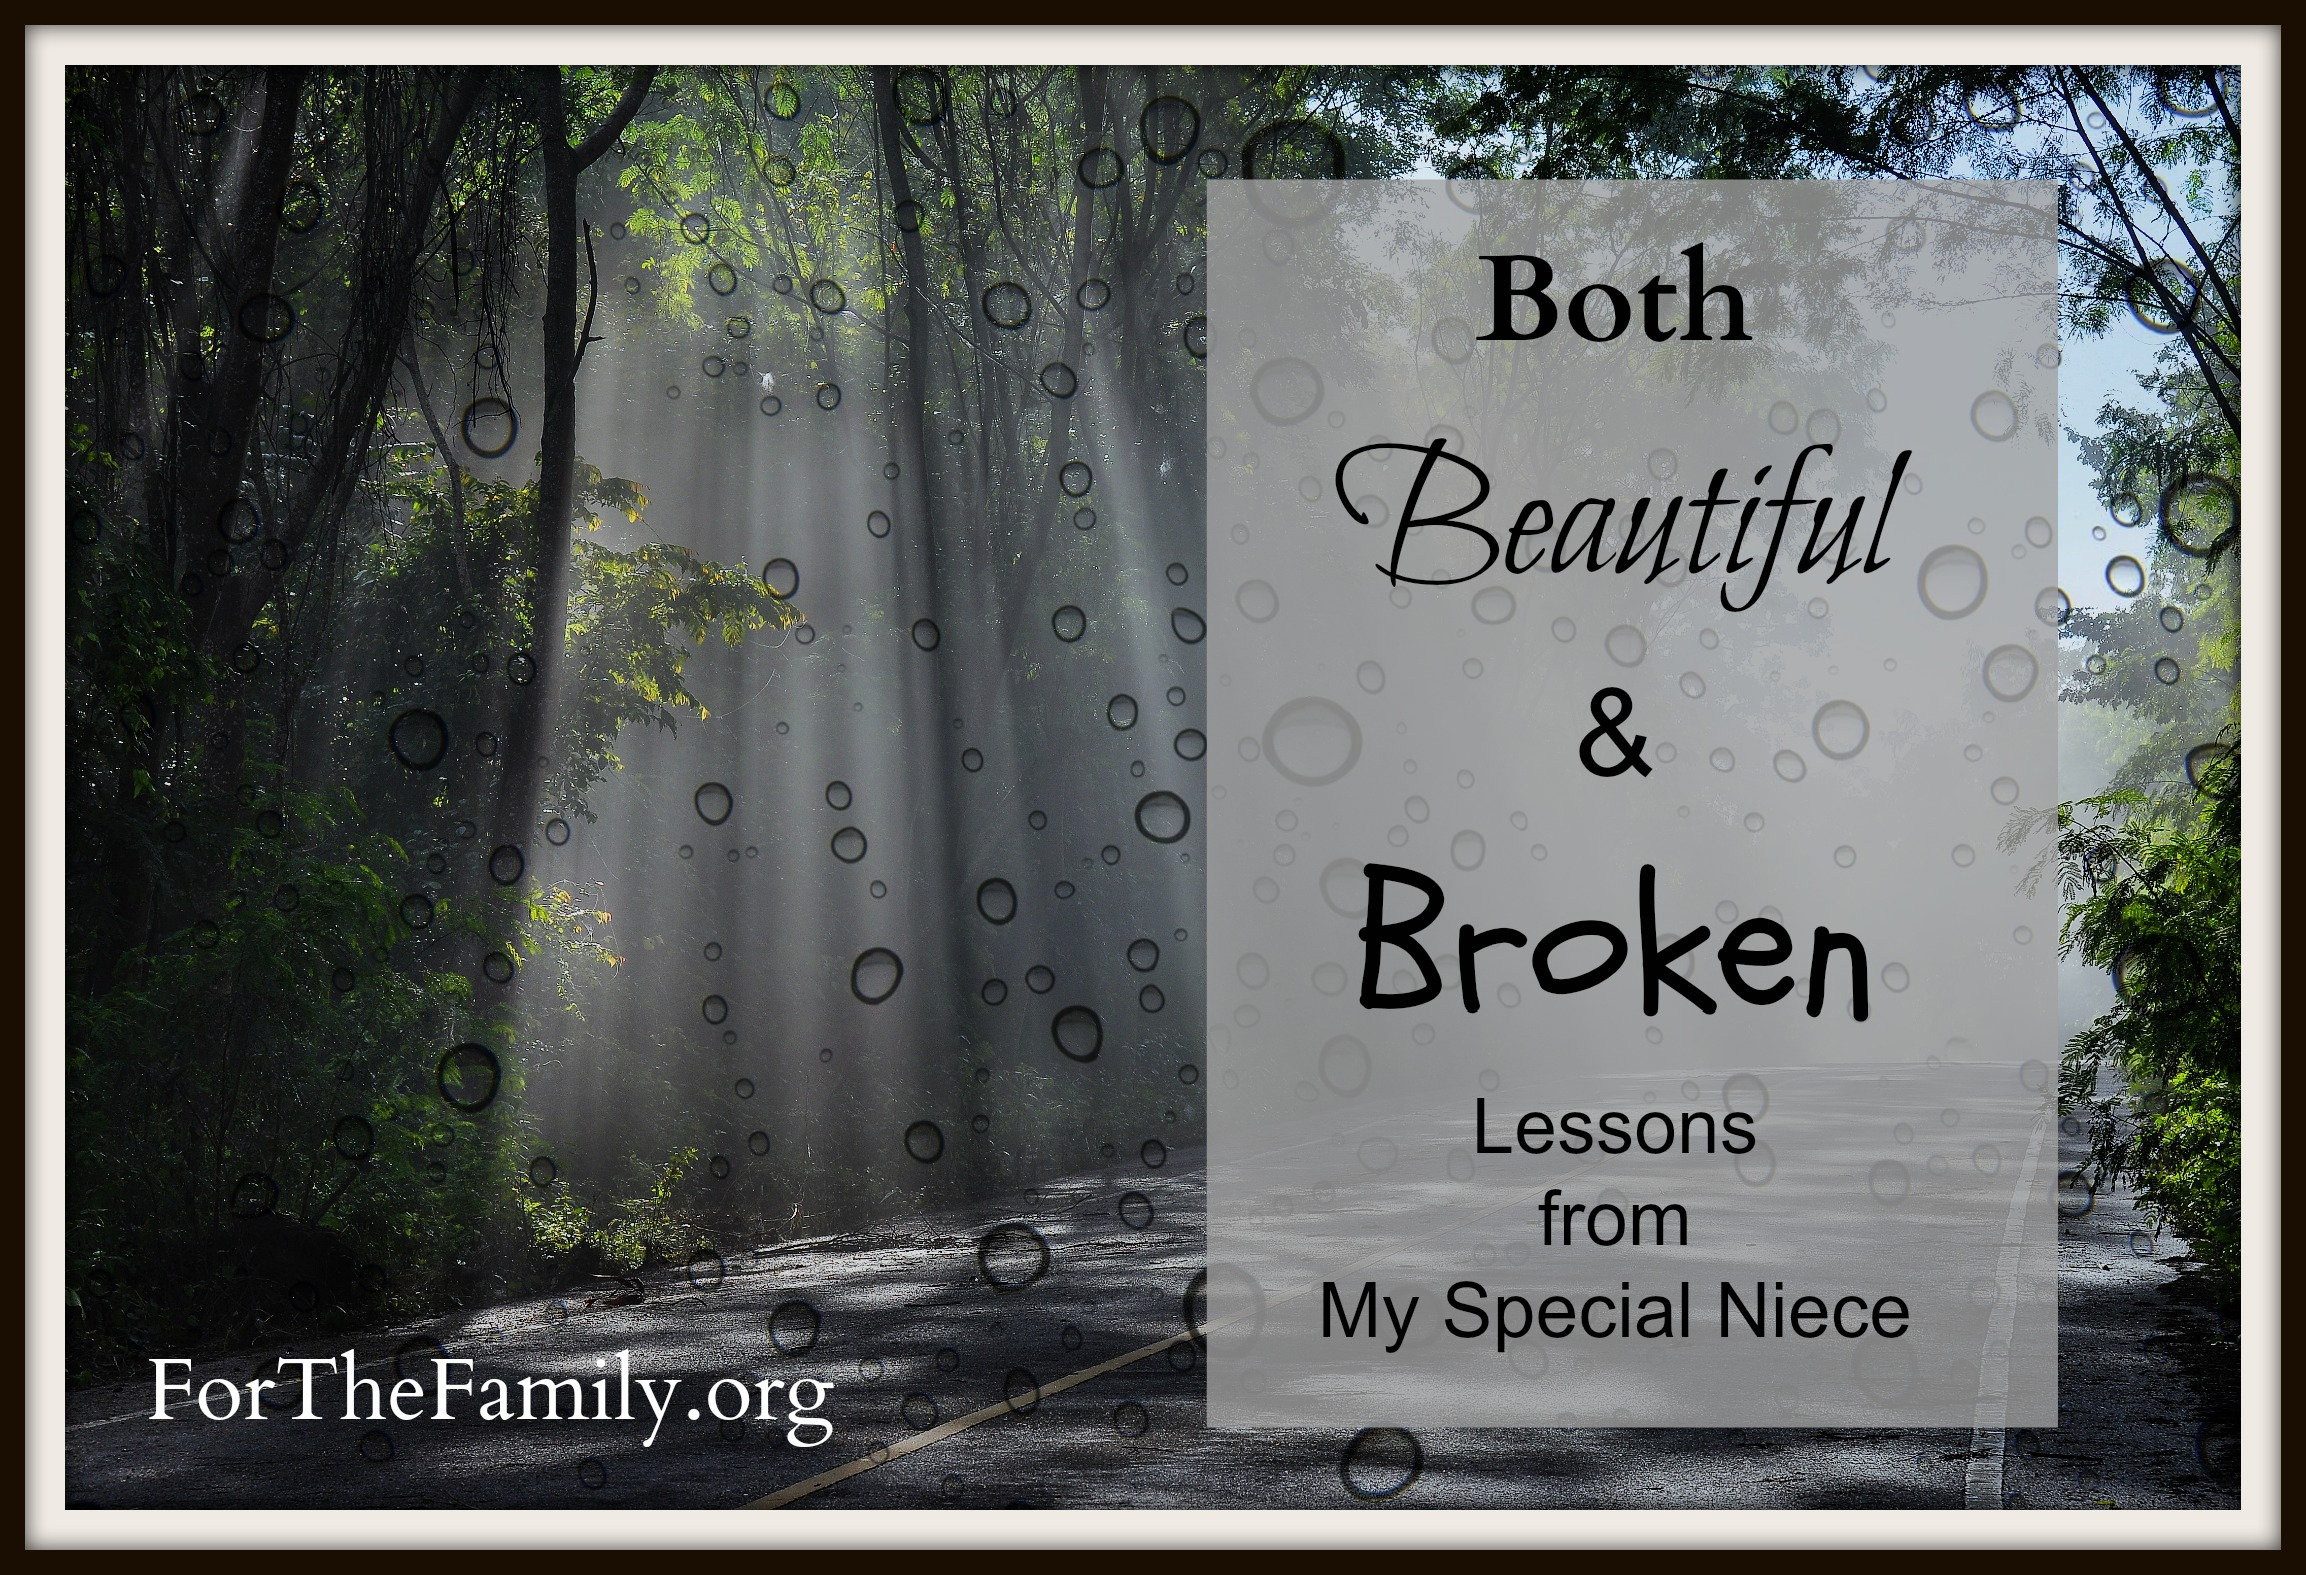 Both Beautiful & Broken {Lessons from My Special Niece}